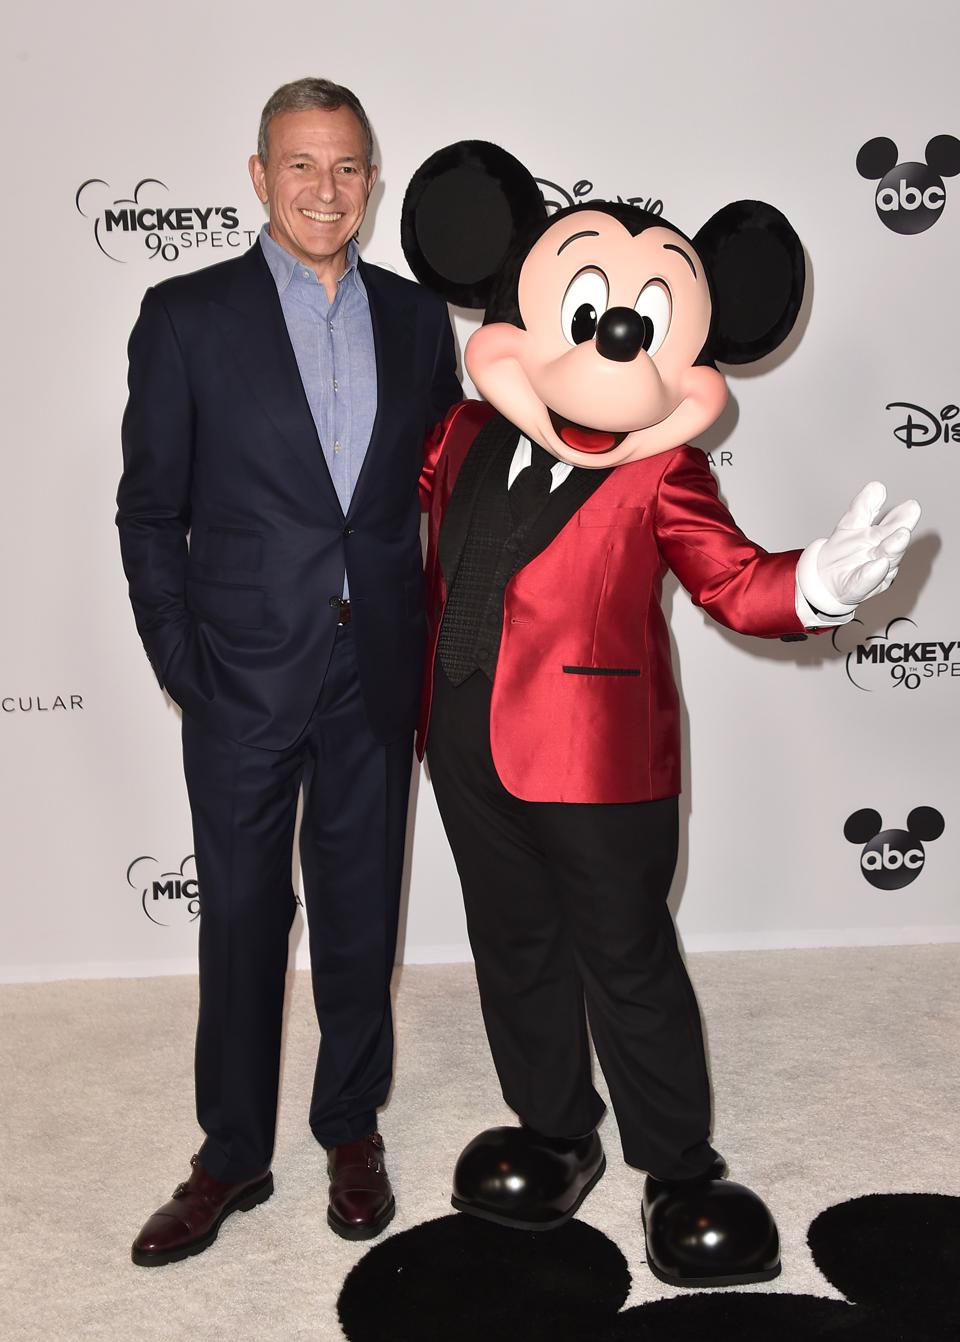 Mickey Mouse and Disney CEO Bob Iger.